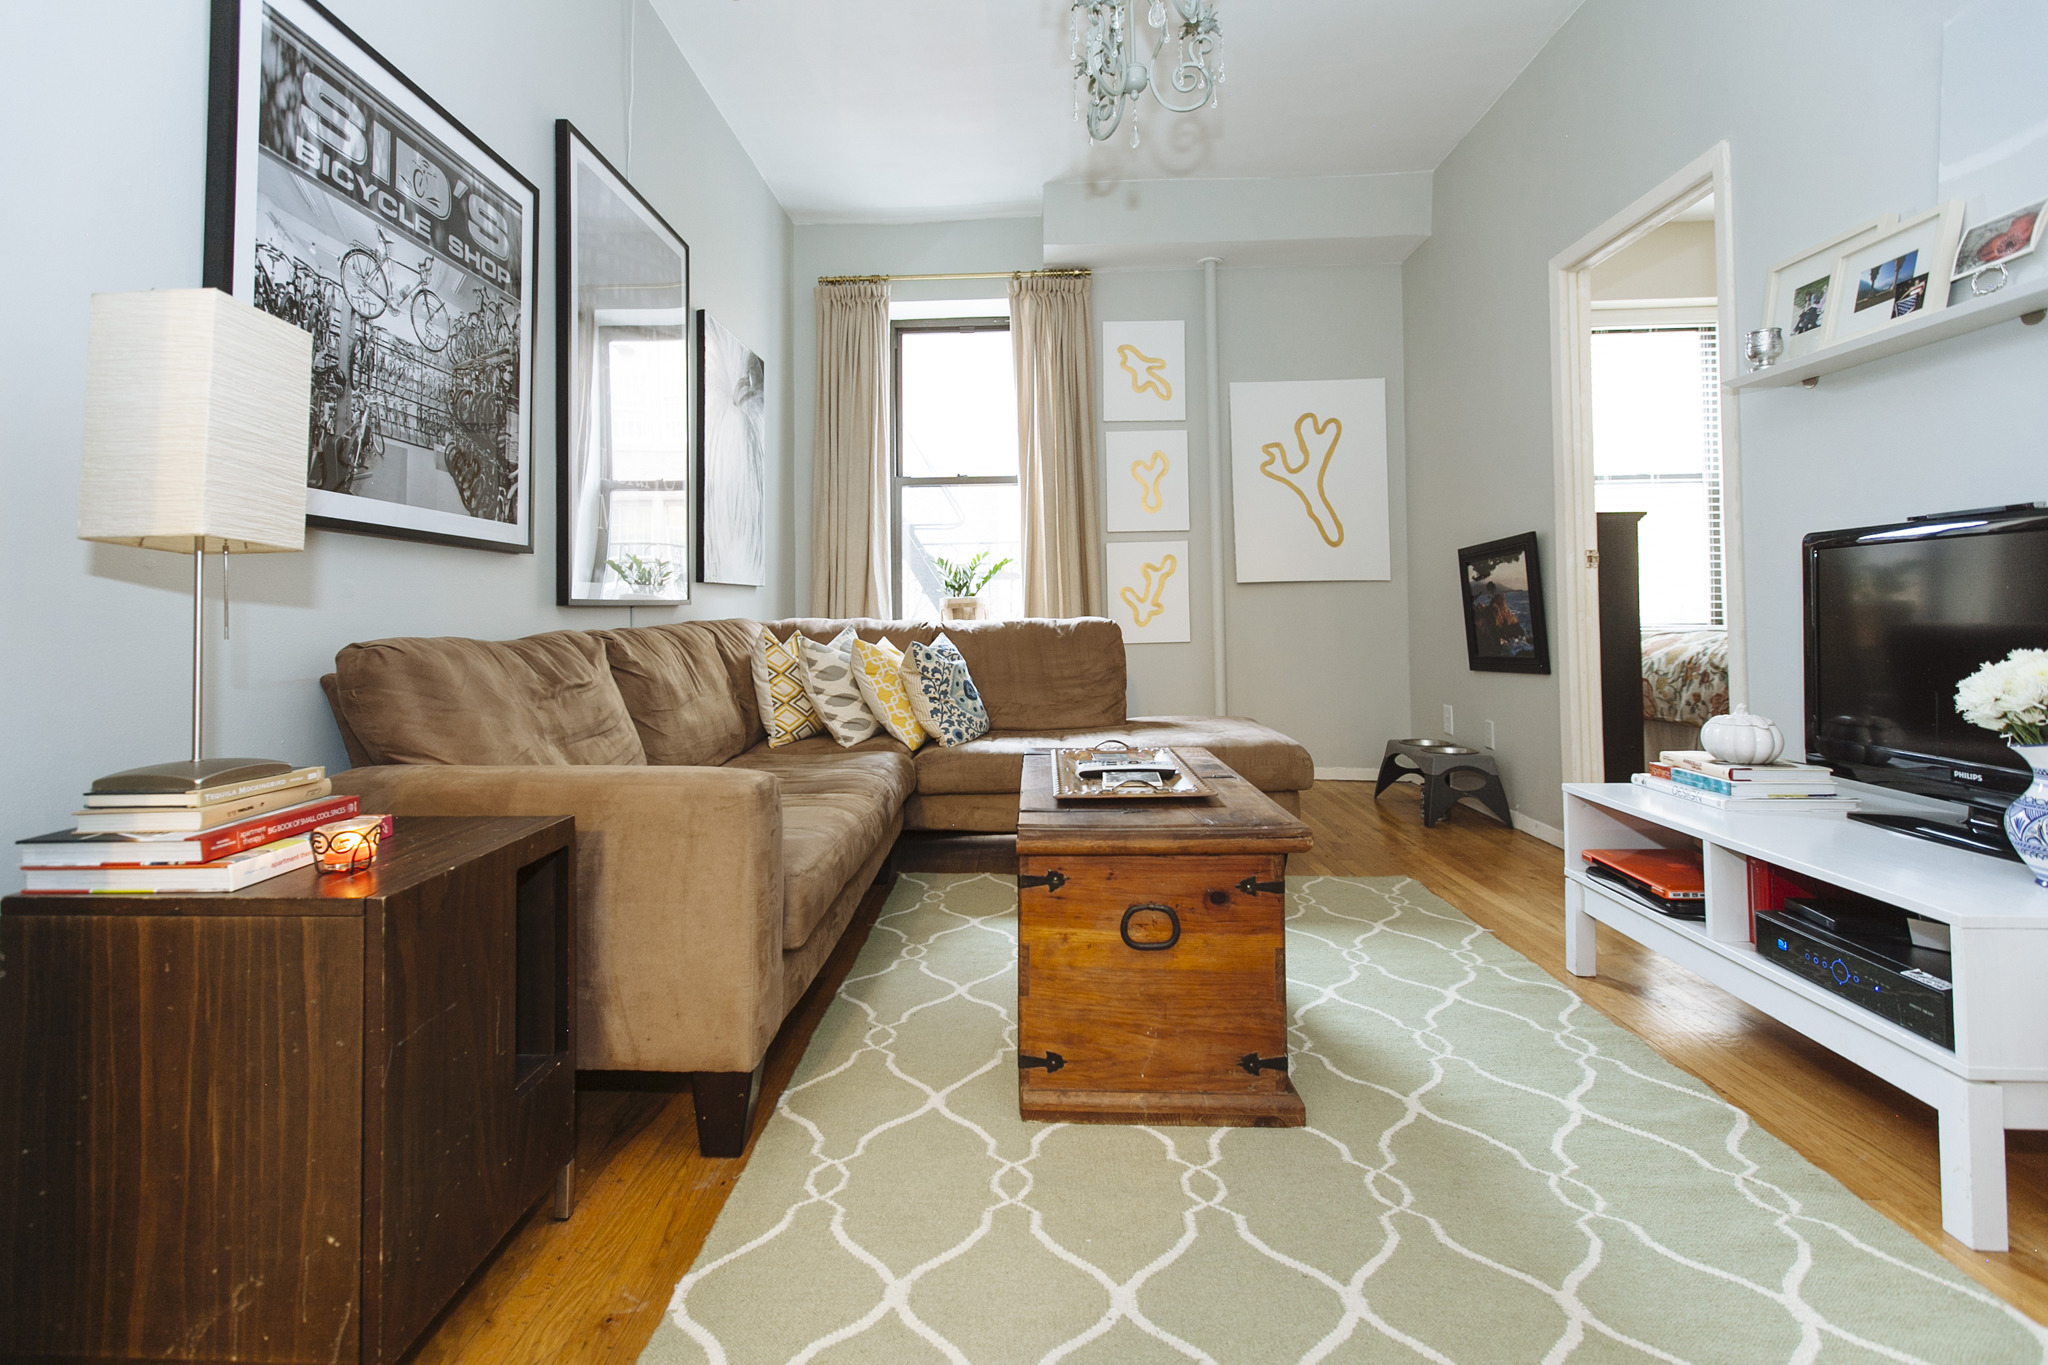 Small Nyc Apartment Design Get Interior Design Ideas From These New York Apartments